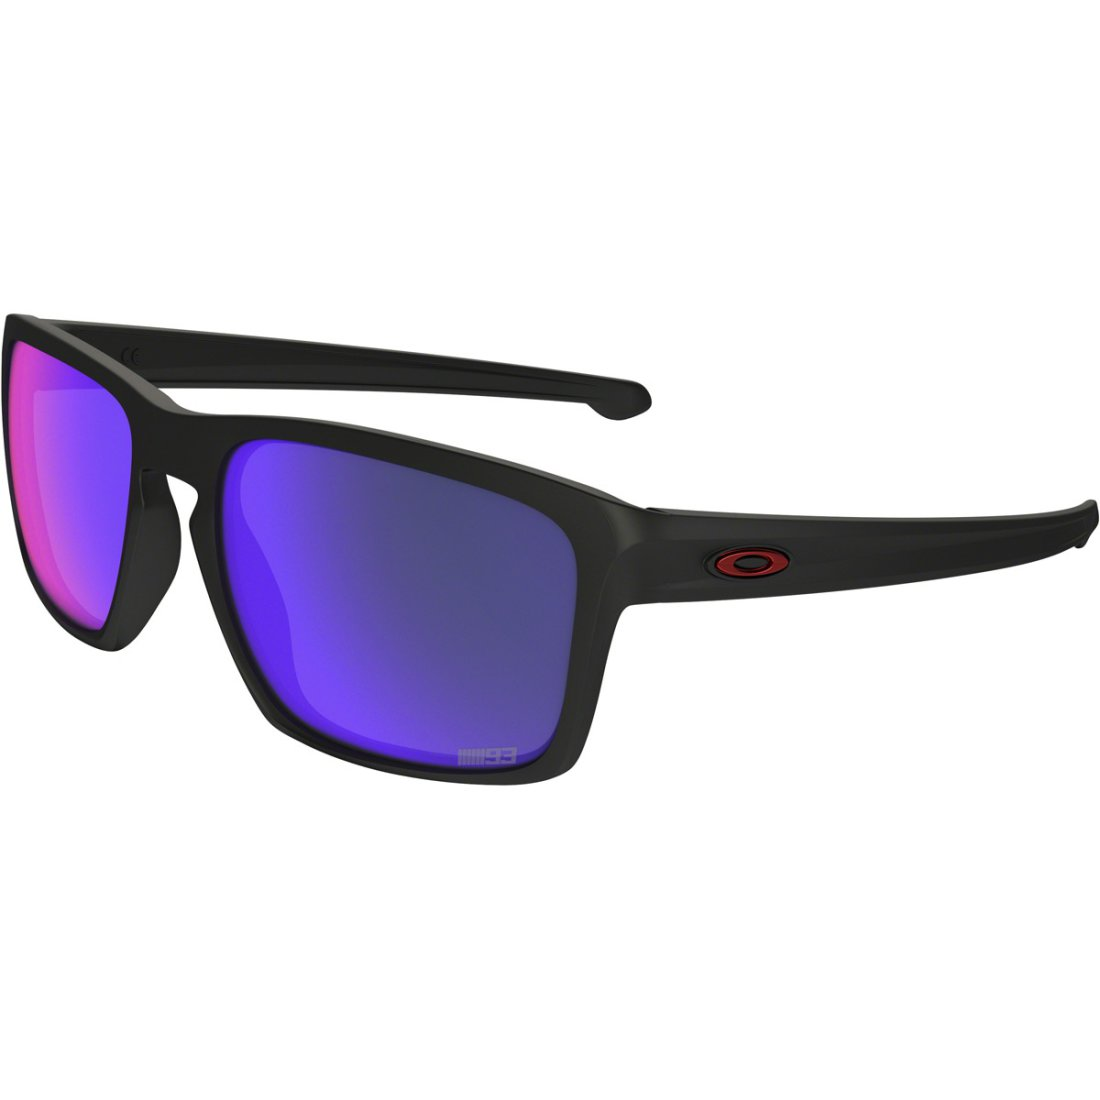 Oakley Sliver Matte Black Violet Iridium Polarized 2017 Taille Unique Noir/violet xOEft4W